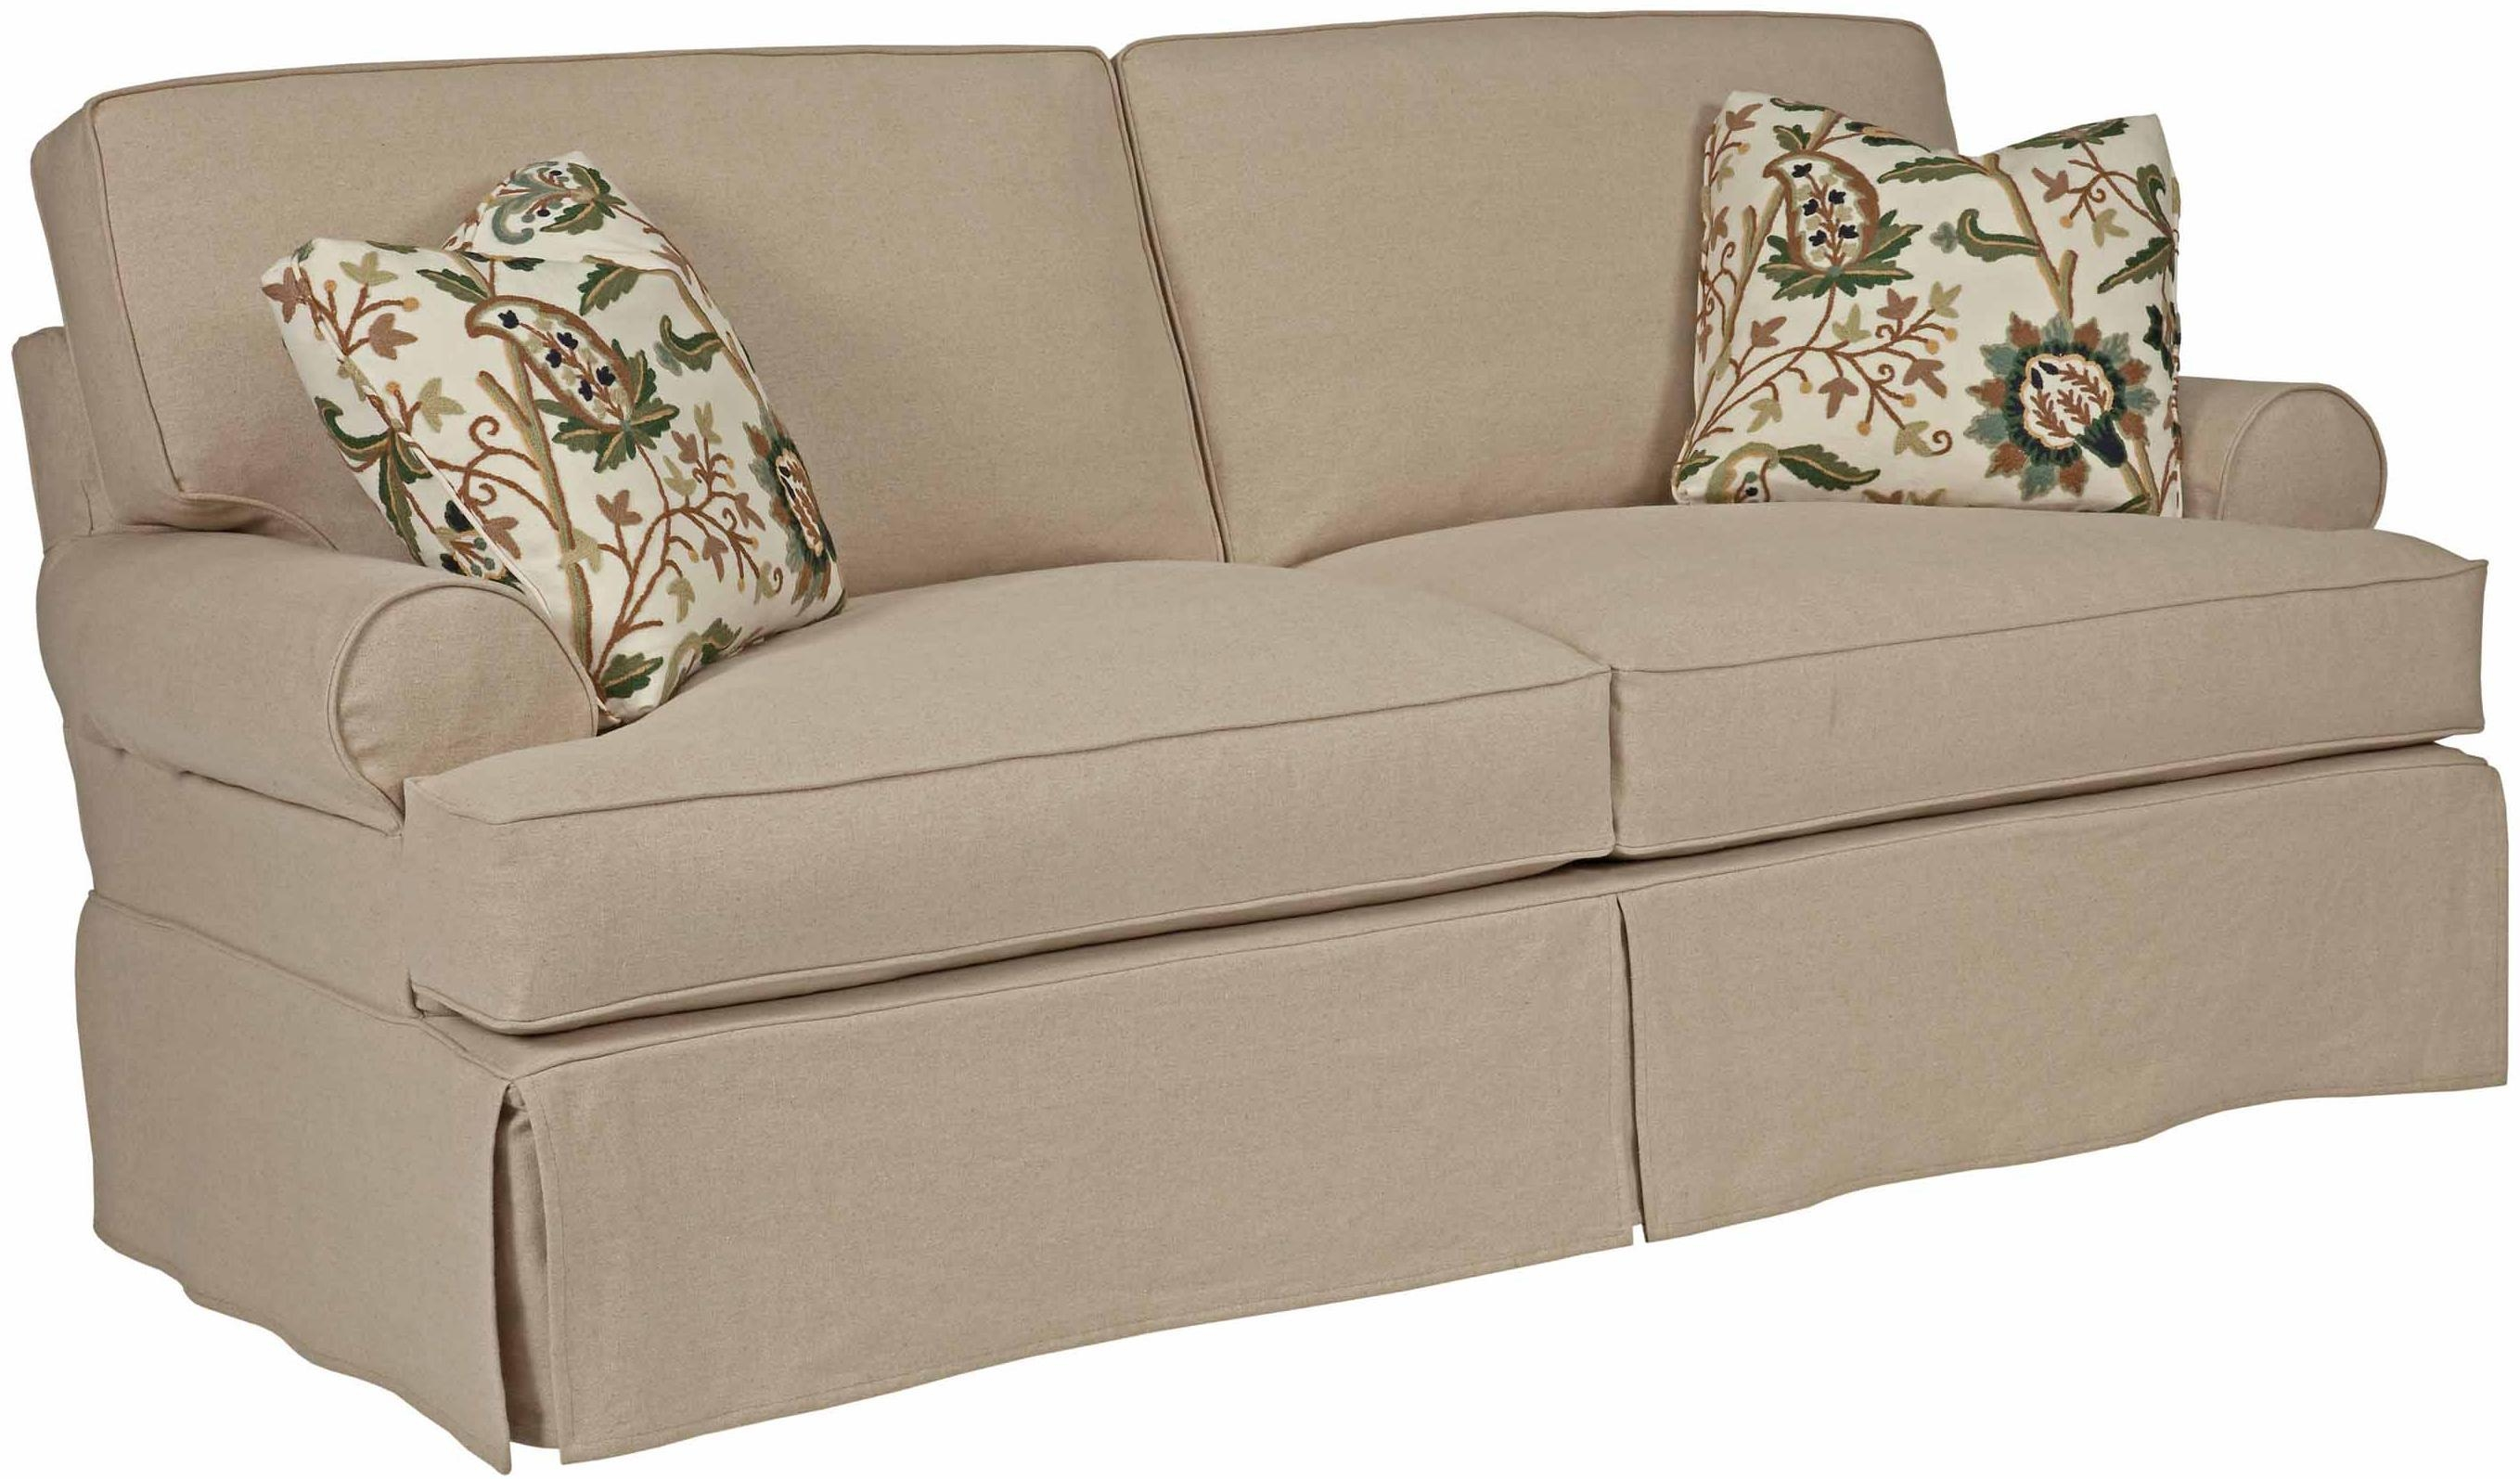 Sofas : Amazing T Cushion Loveseat Slipcover 3 Piece T Cushion Intended For Sofa Loveseat Slipcovers (View 19 of 25)